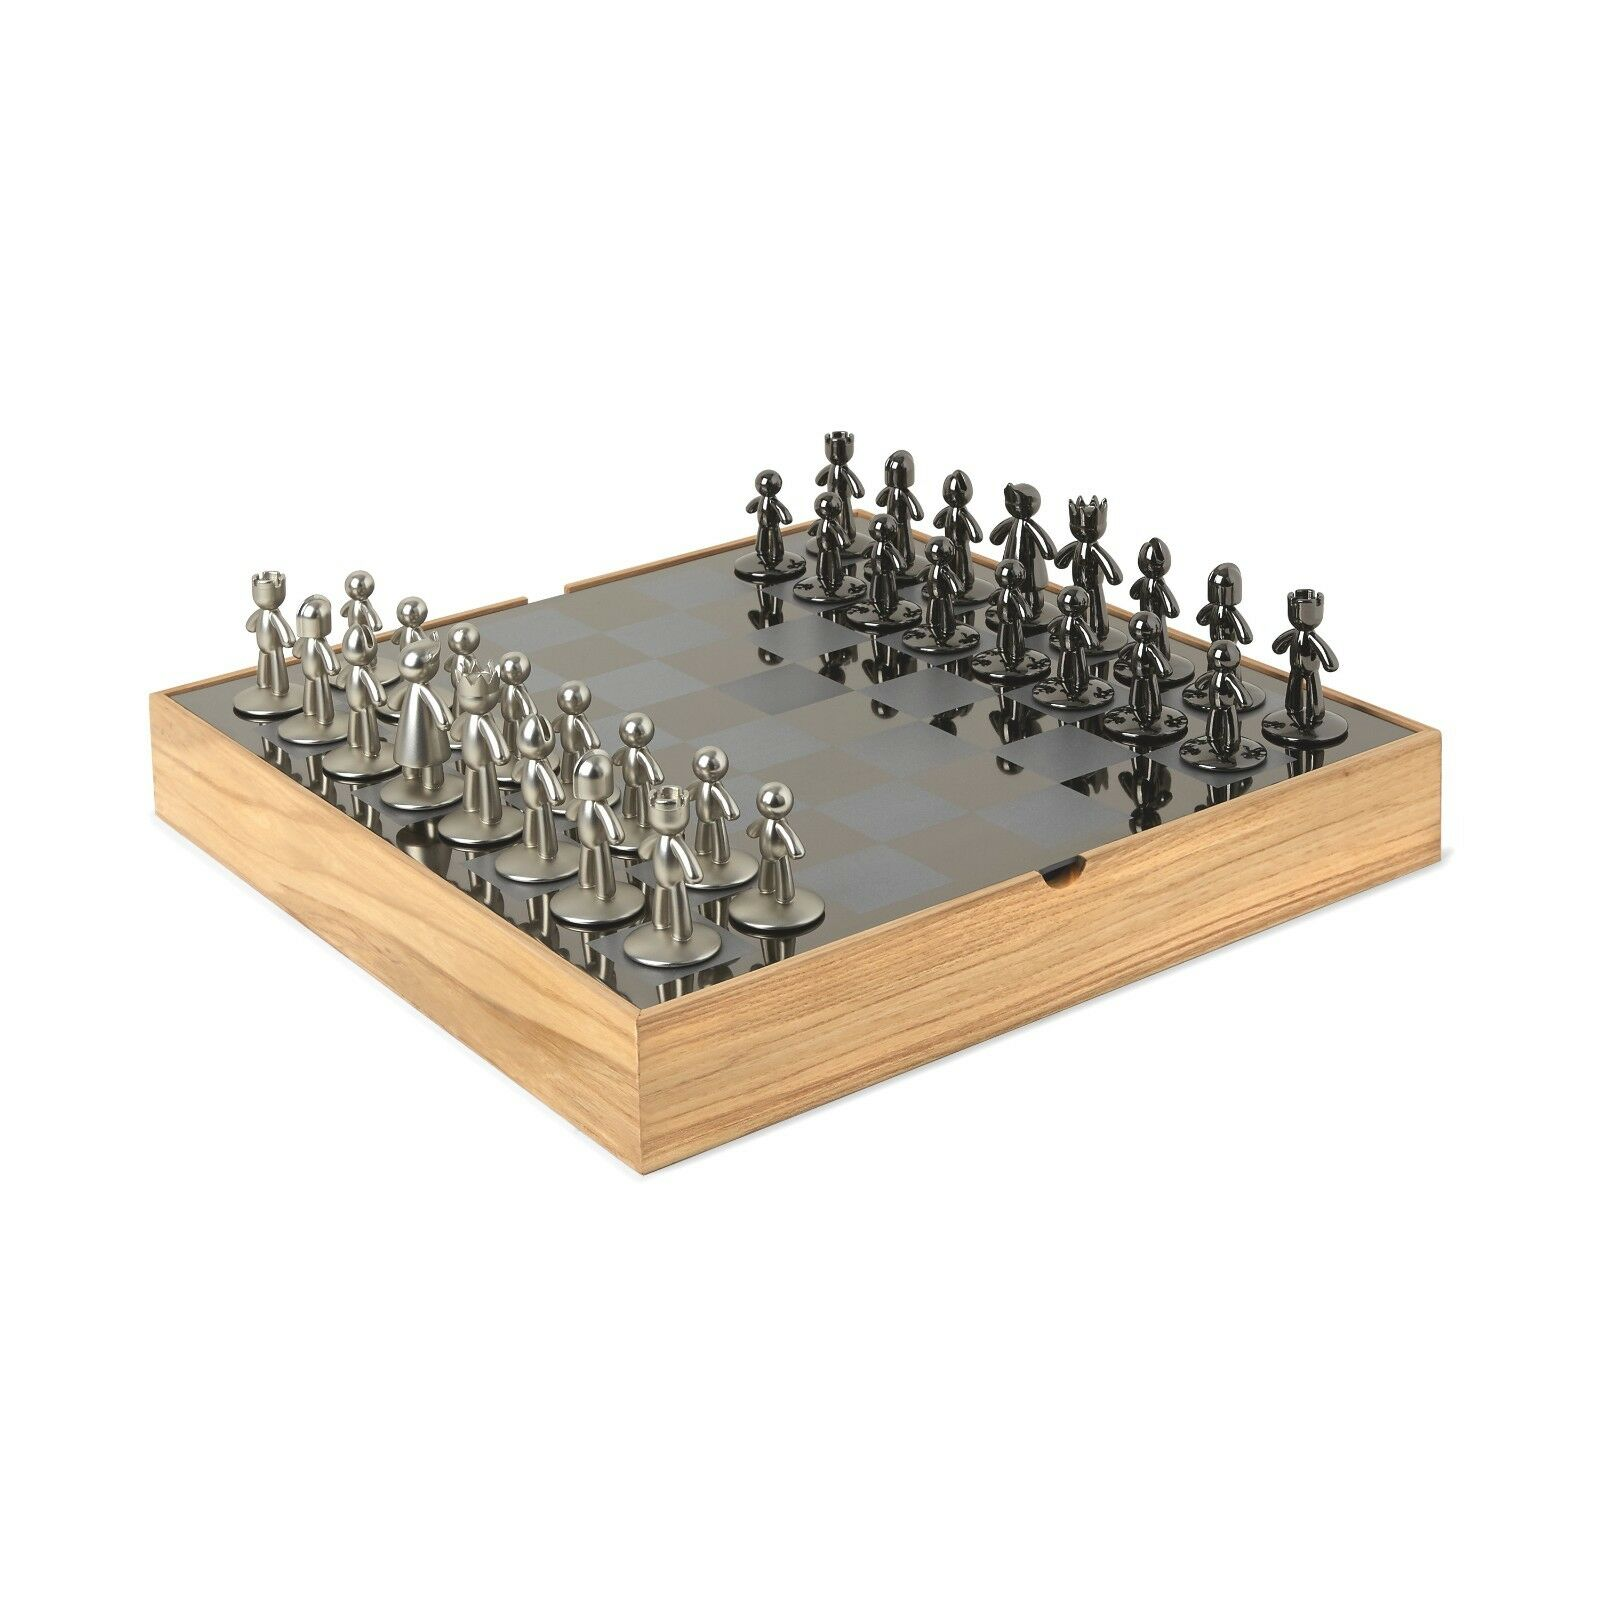 Unique Modern Contemporary Wood & Metal Self Storing Chess Board & Pieces Set